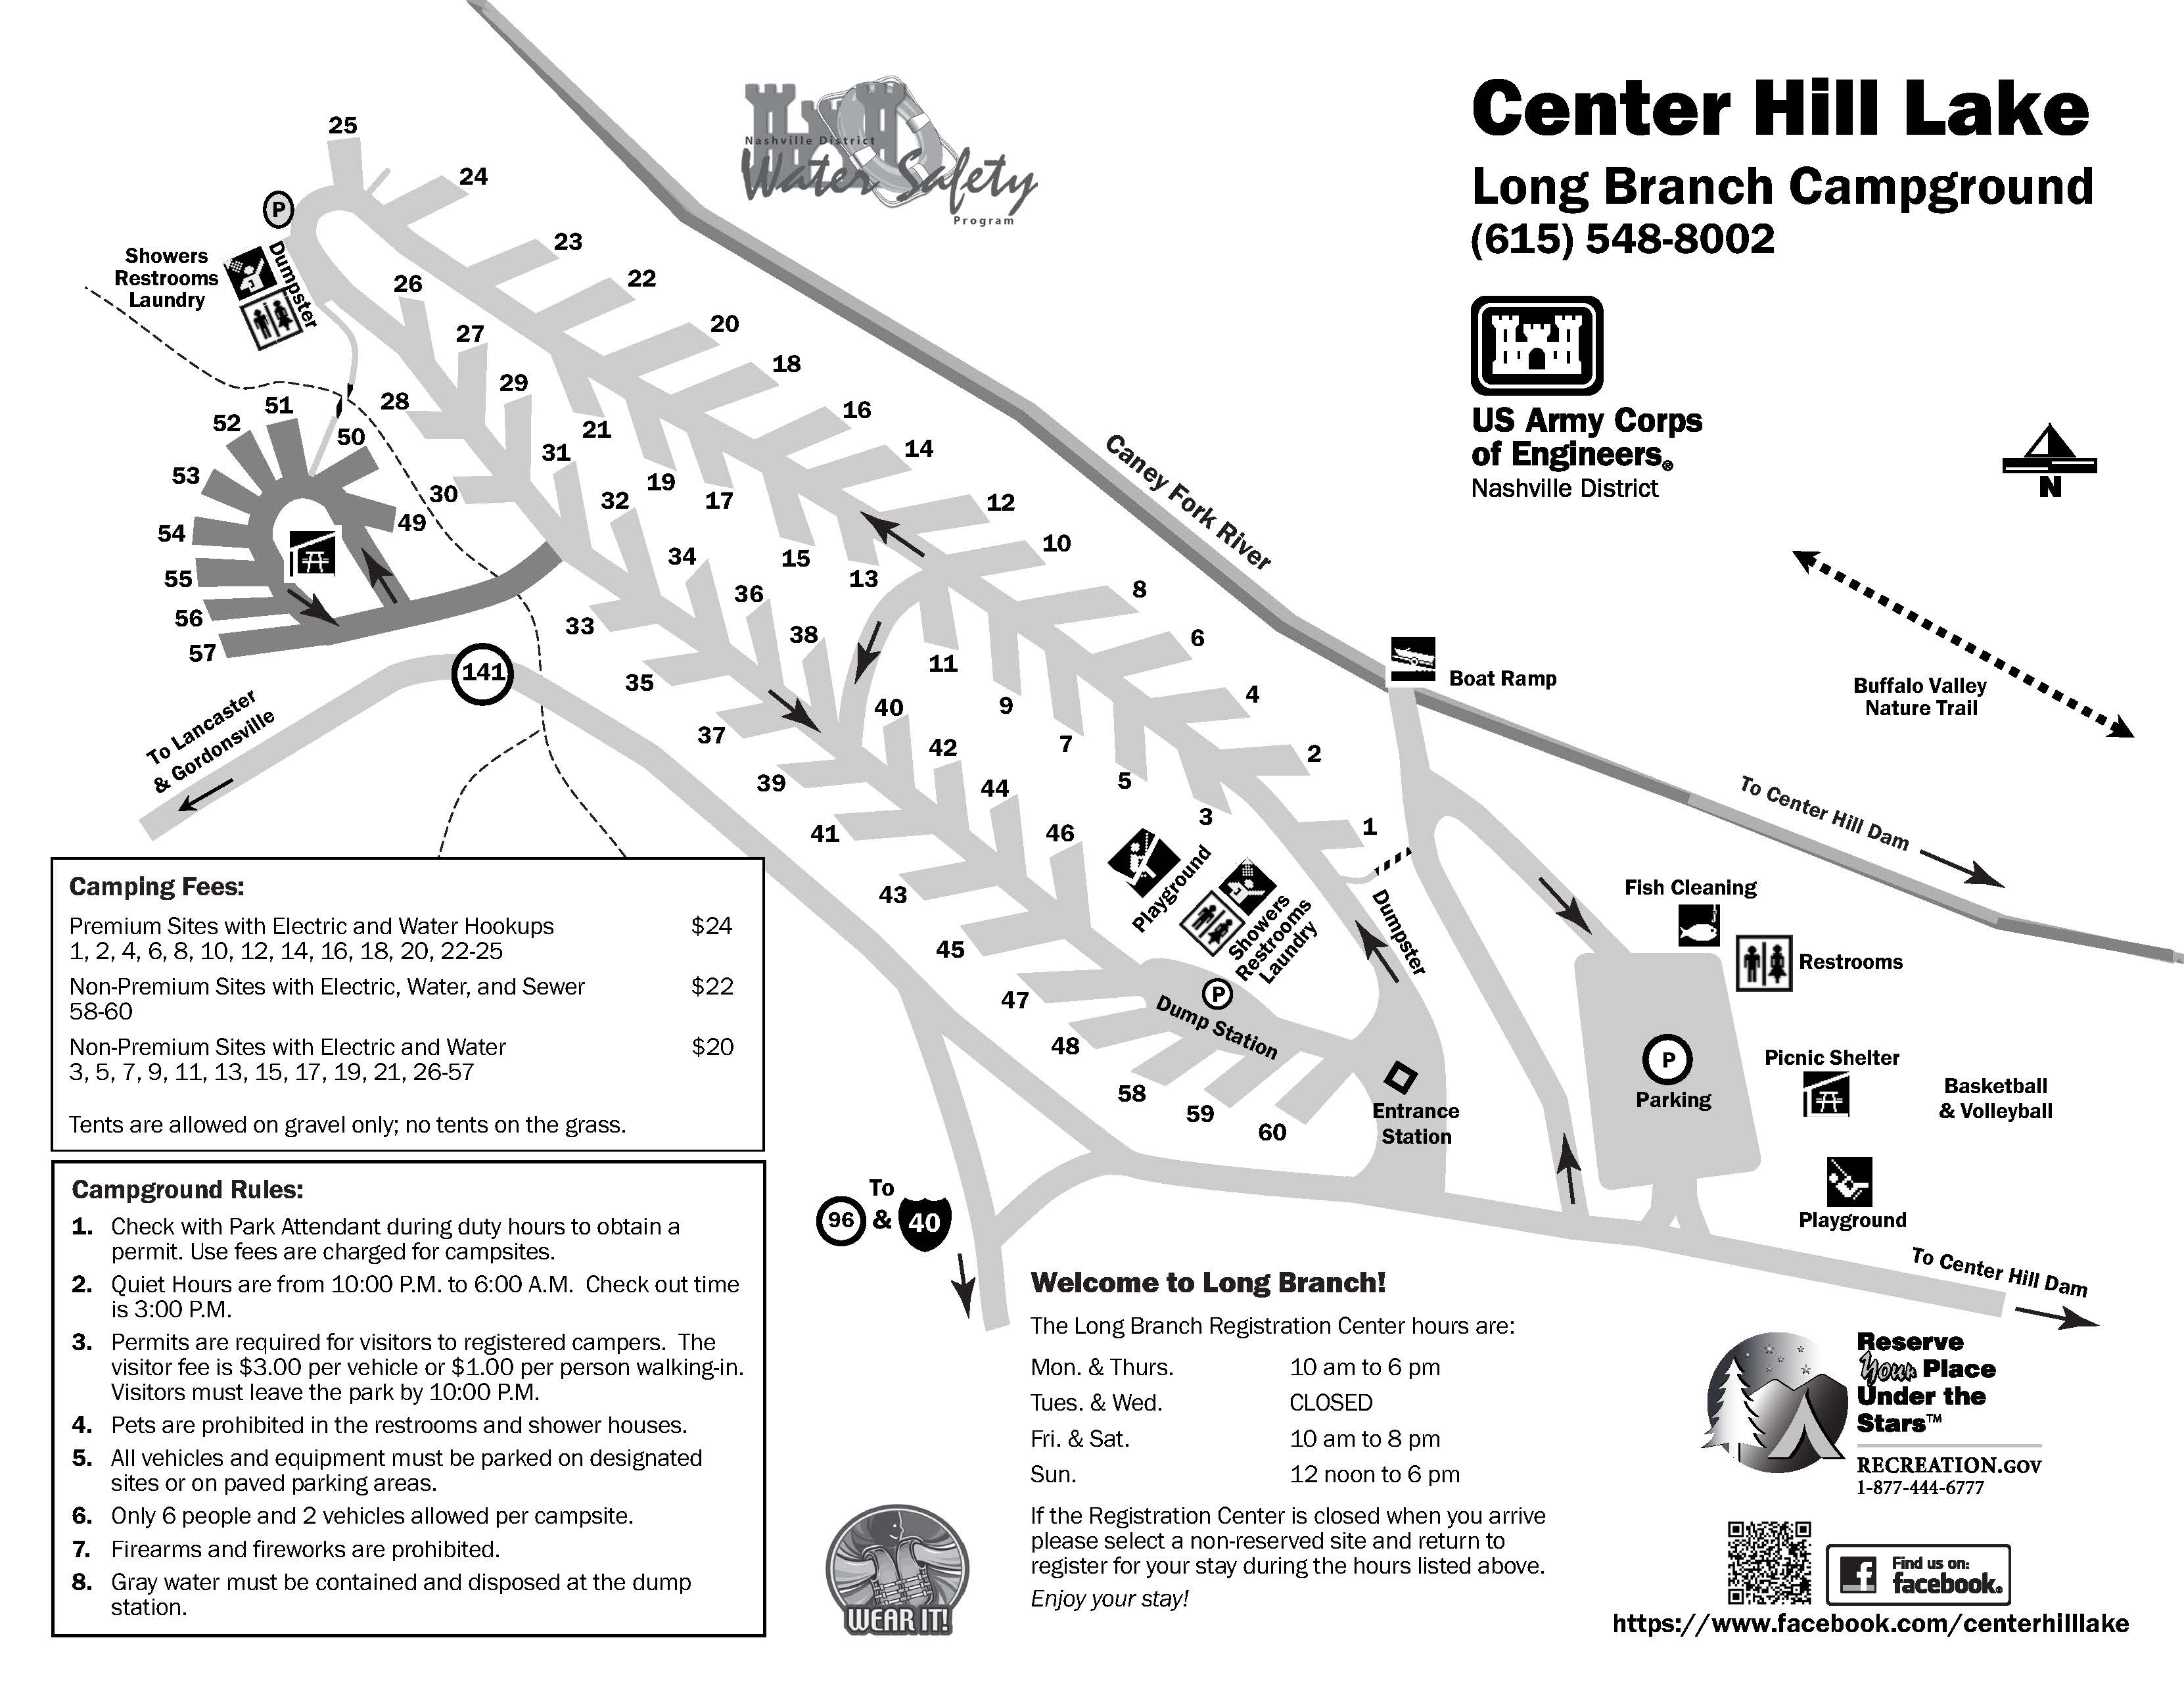 Center Hill Lake Tennessee Map.Nashville District Locations Lakes Center Hill Lake Maps